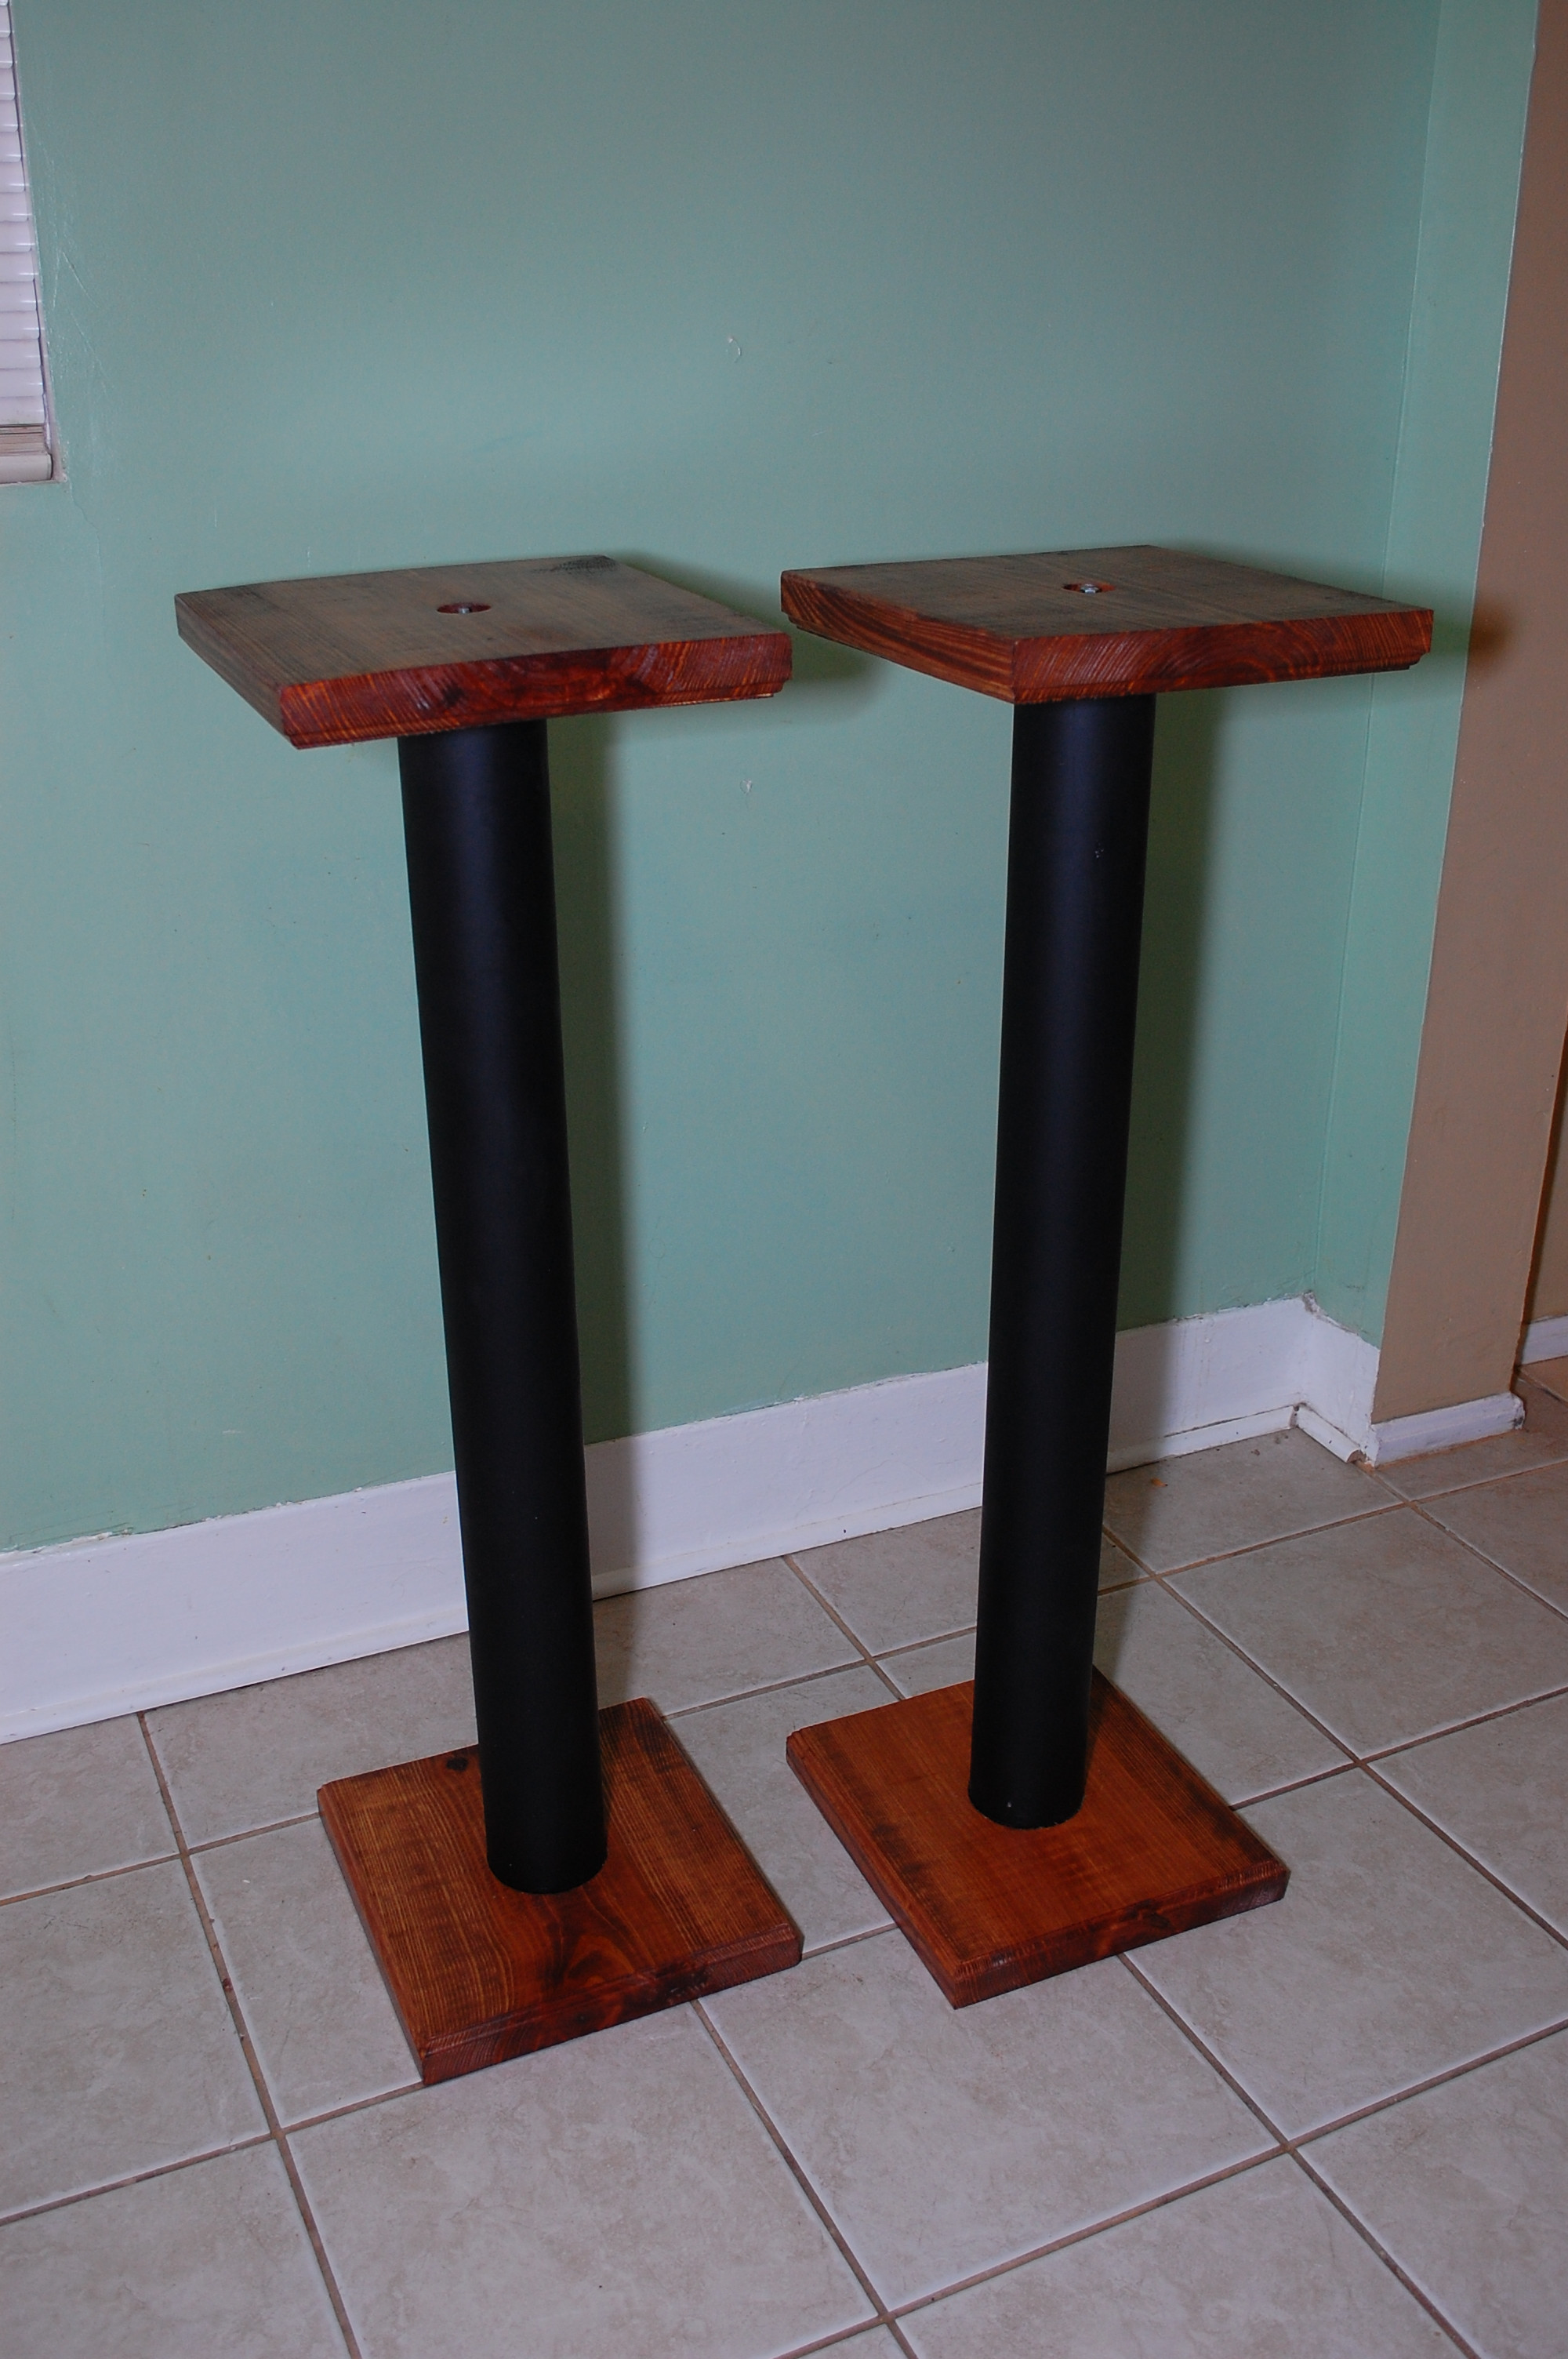 Best ideas about DIY Stand For . Save or Pin Jordan Colburn Great DIY Speaker Stands for $30 Now.